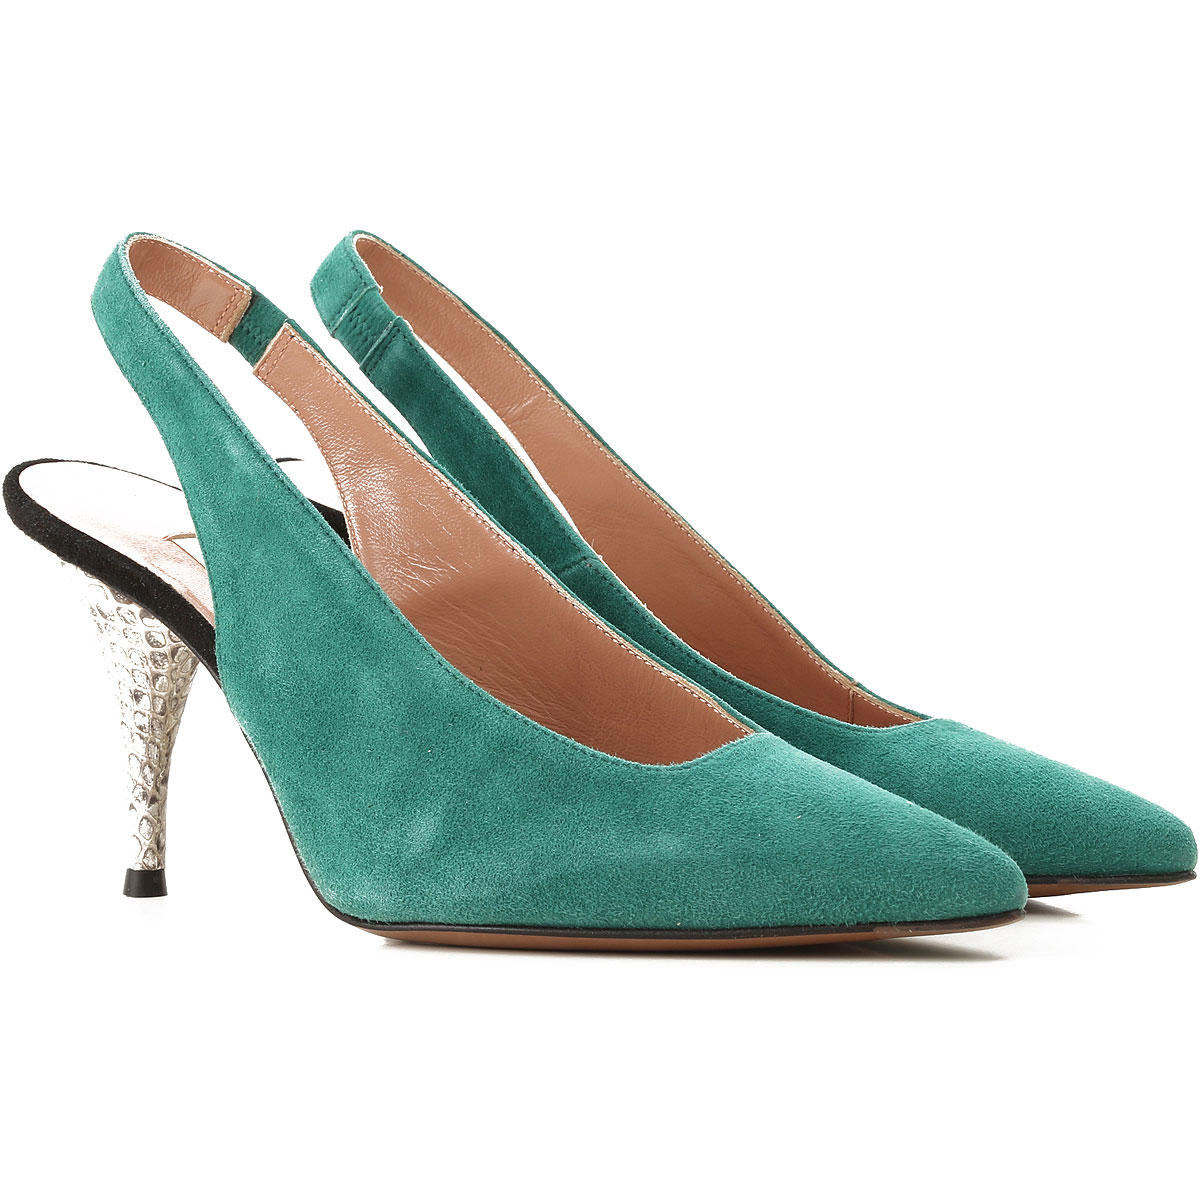 Lautre Chose Pumps & High Heels for Women in Outlet Green USA - GOOFASH